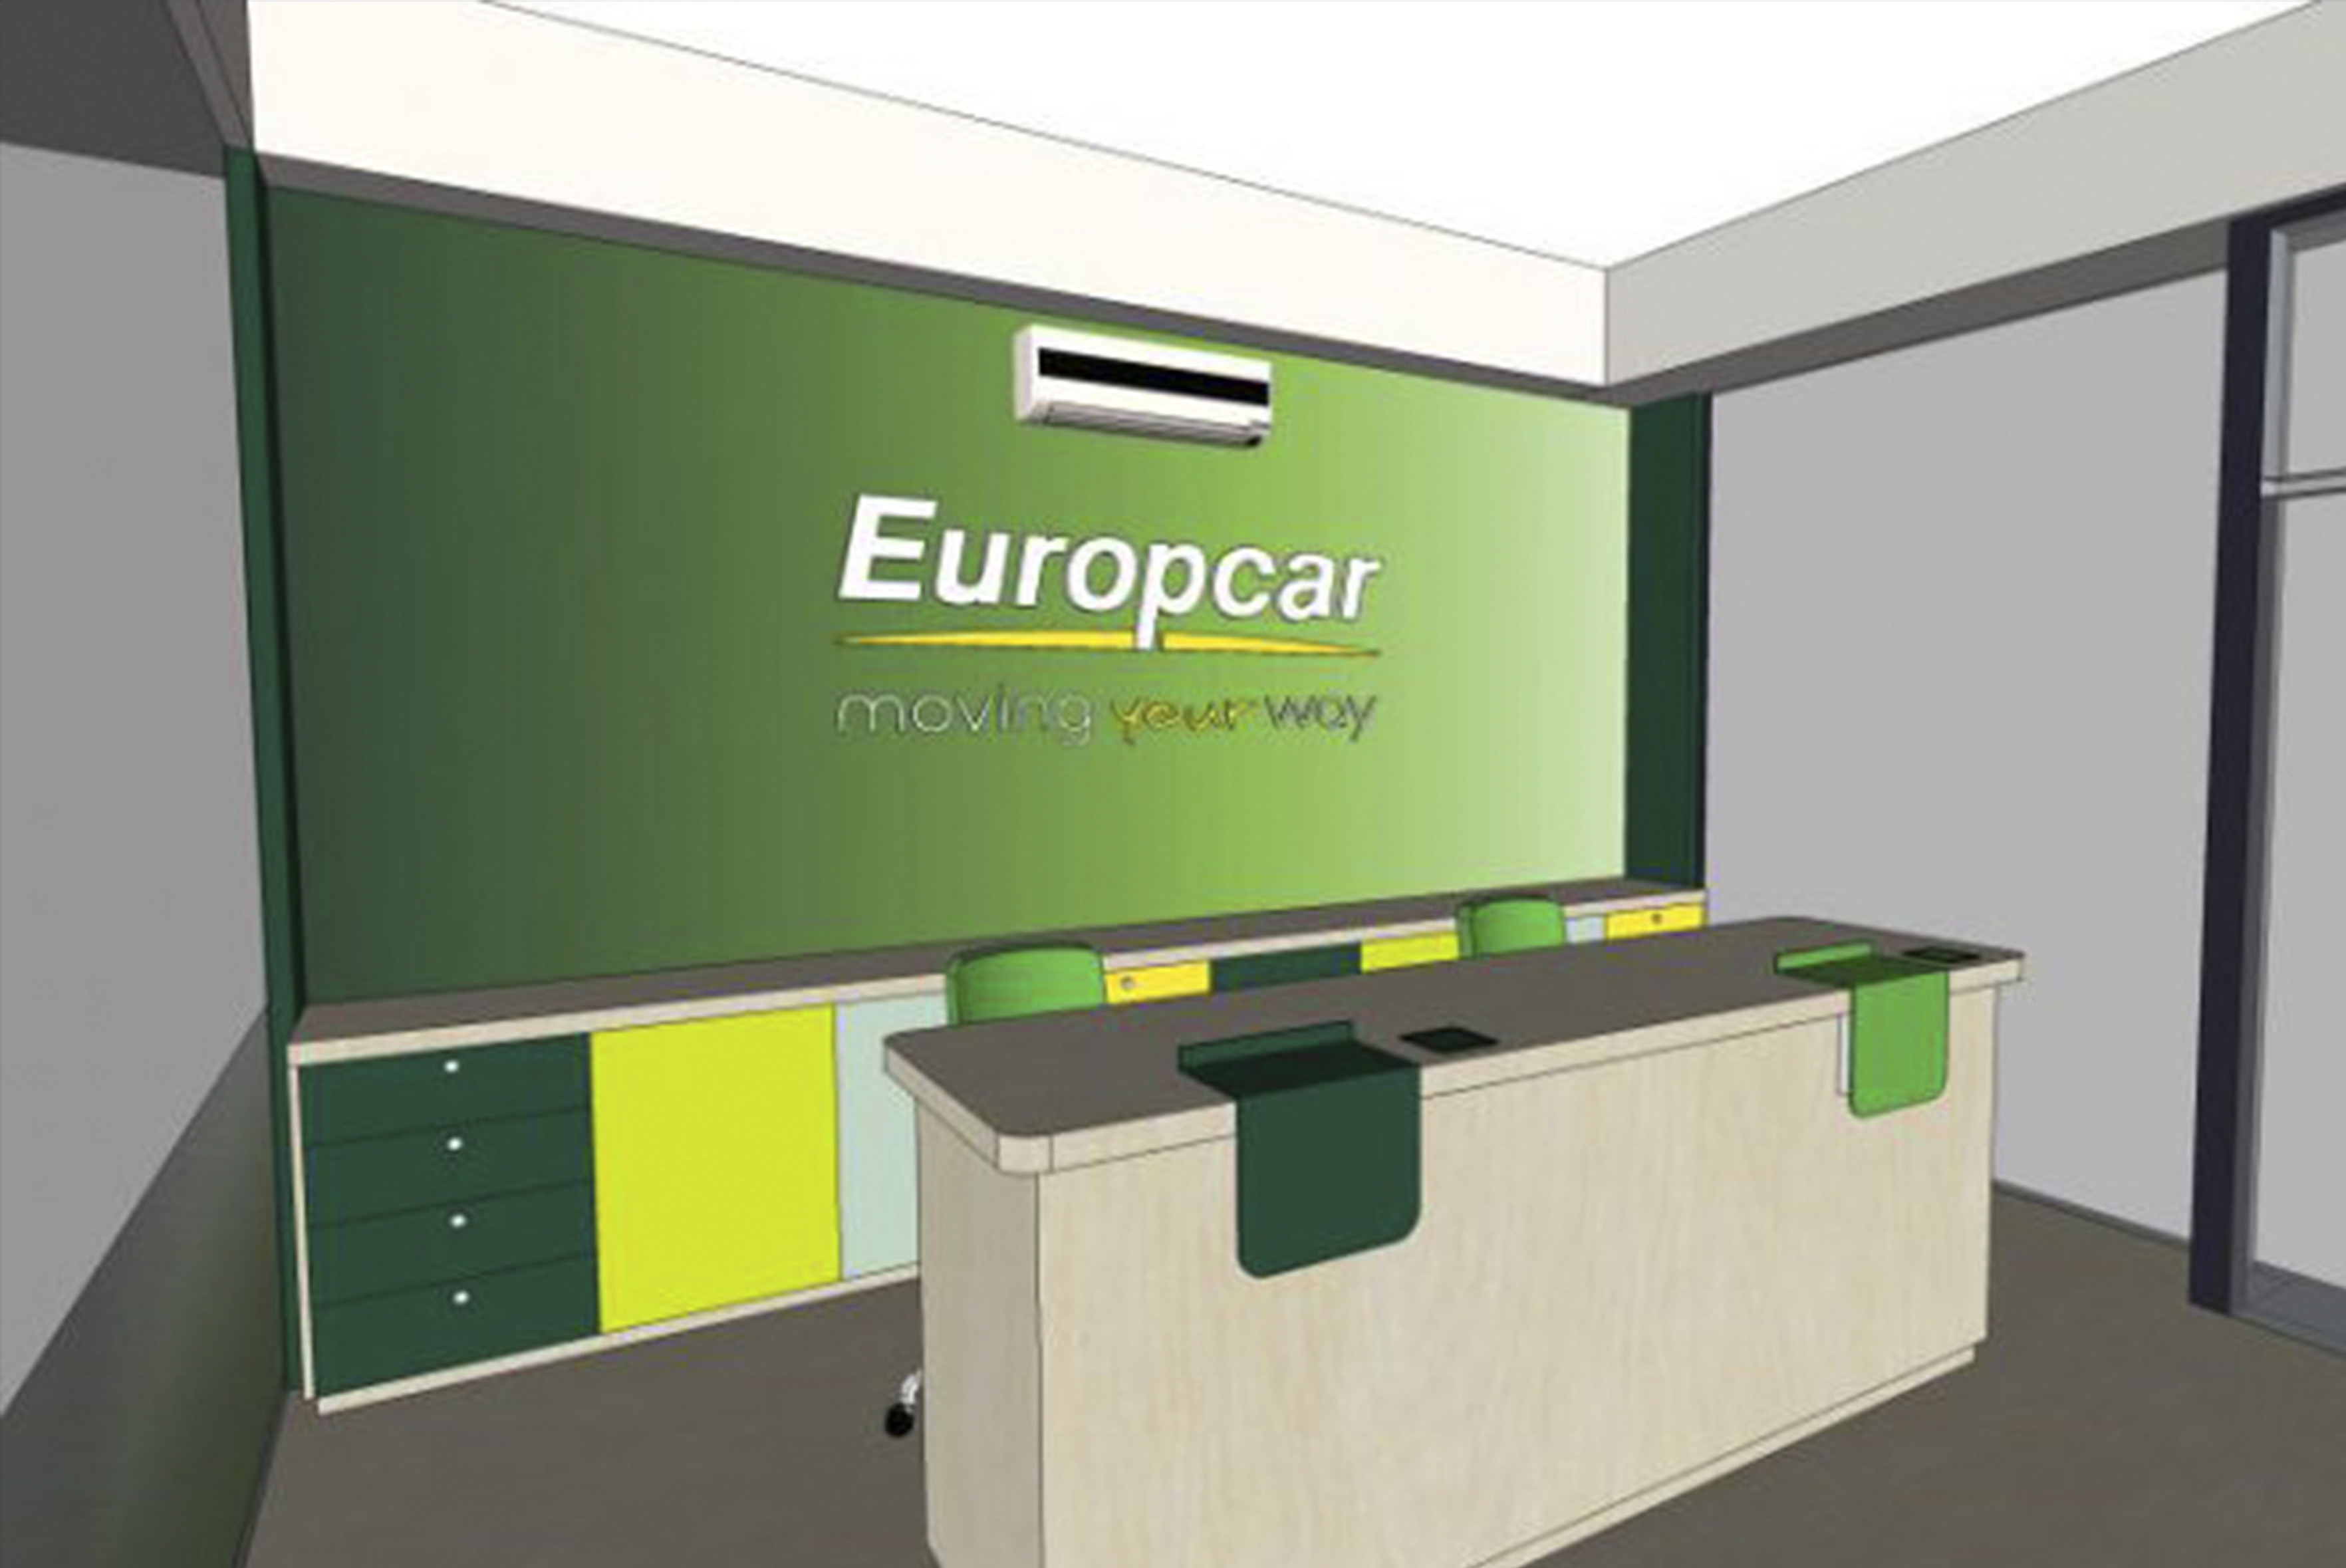 Europcar artwork signage design